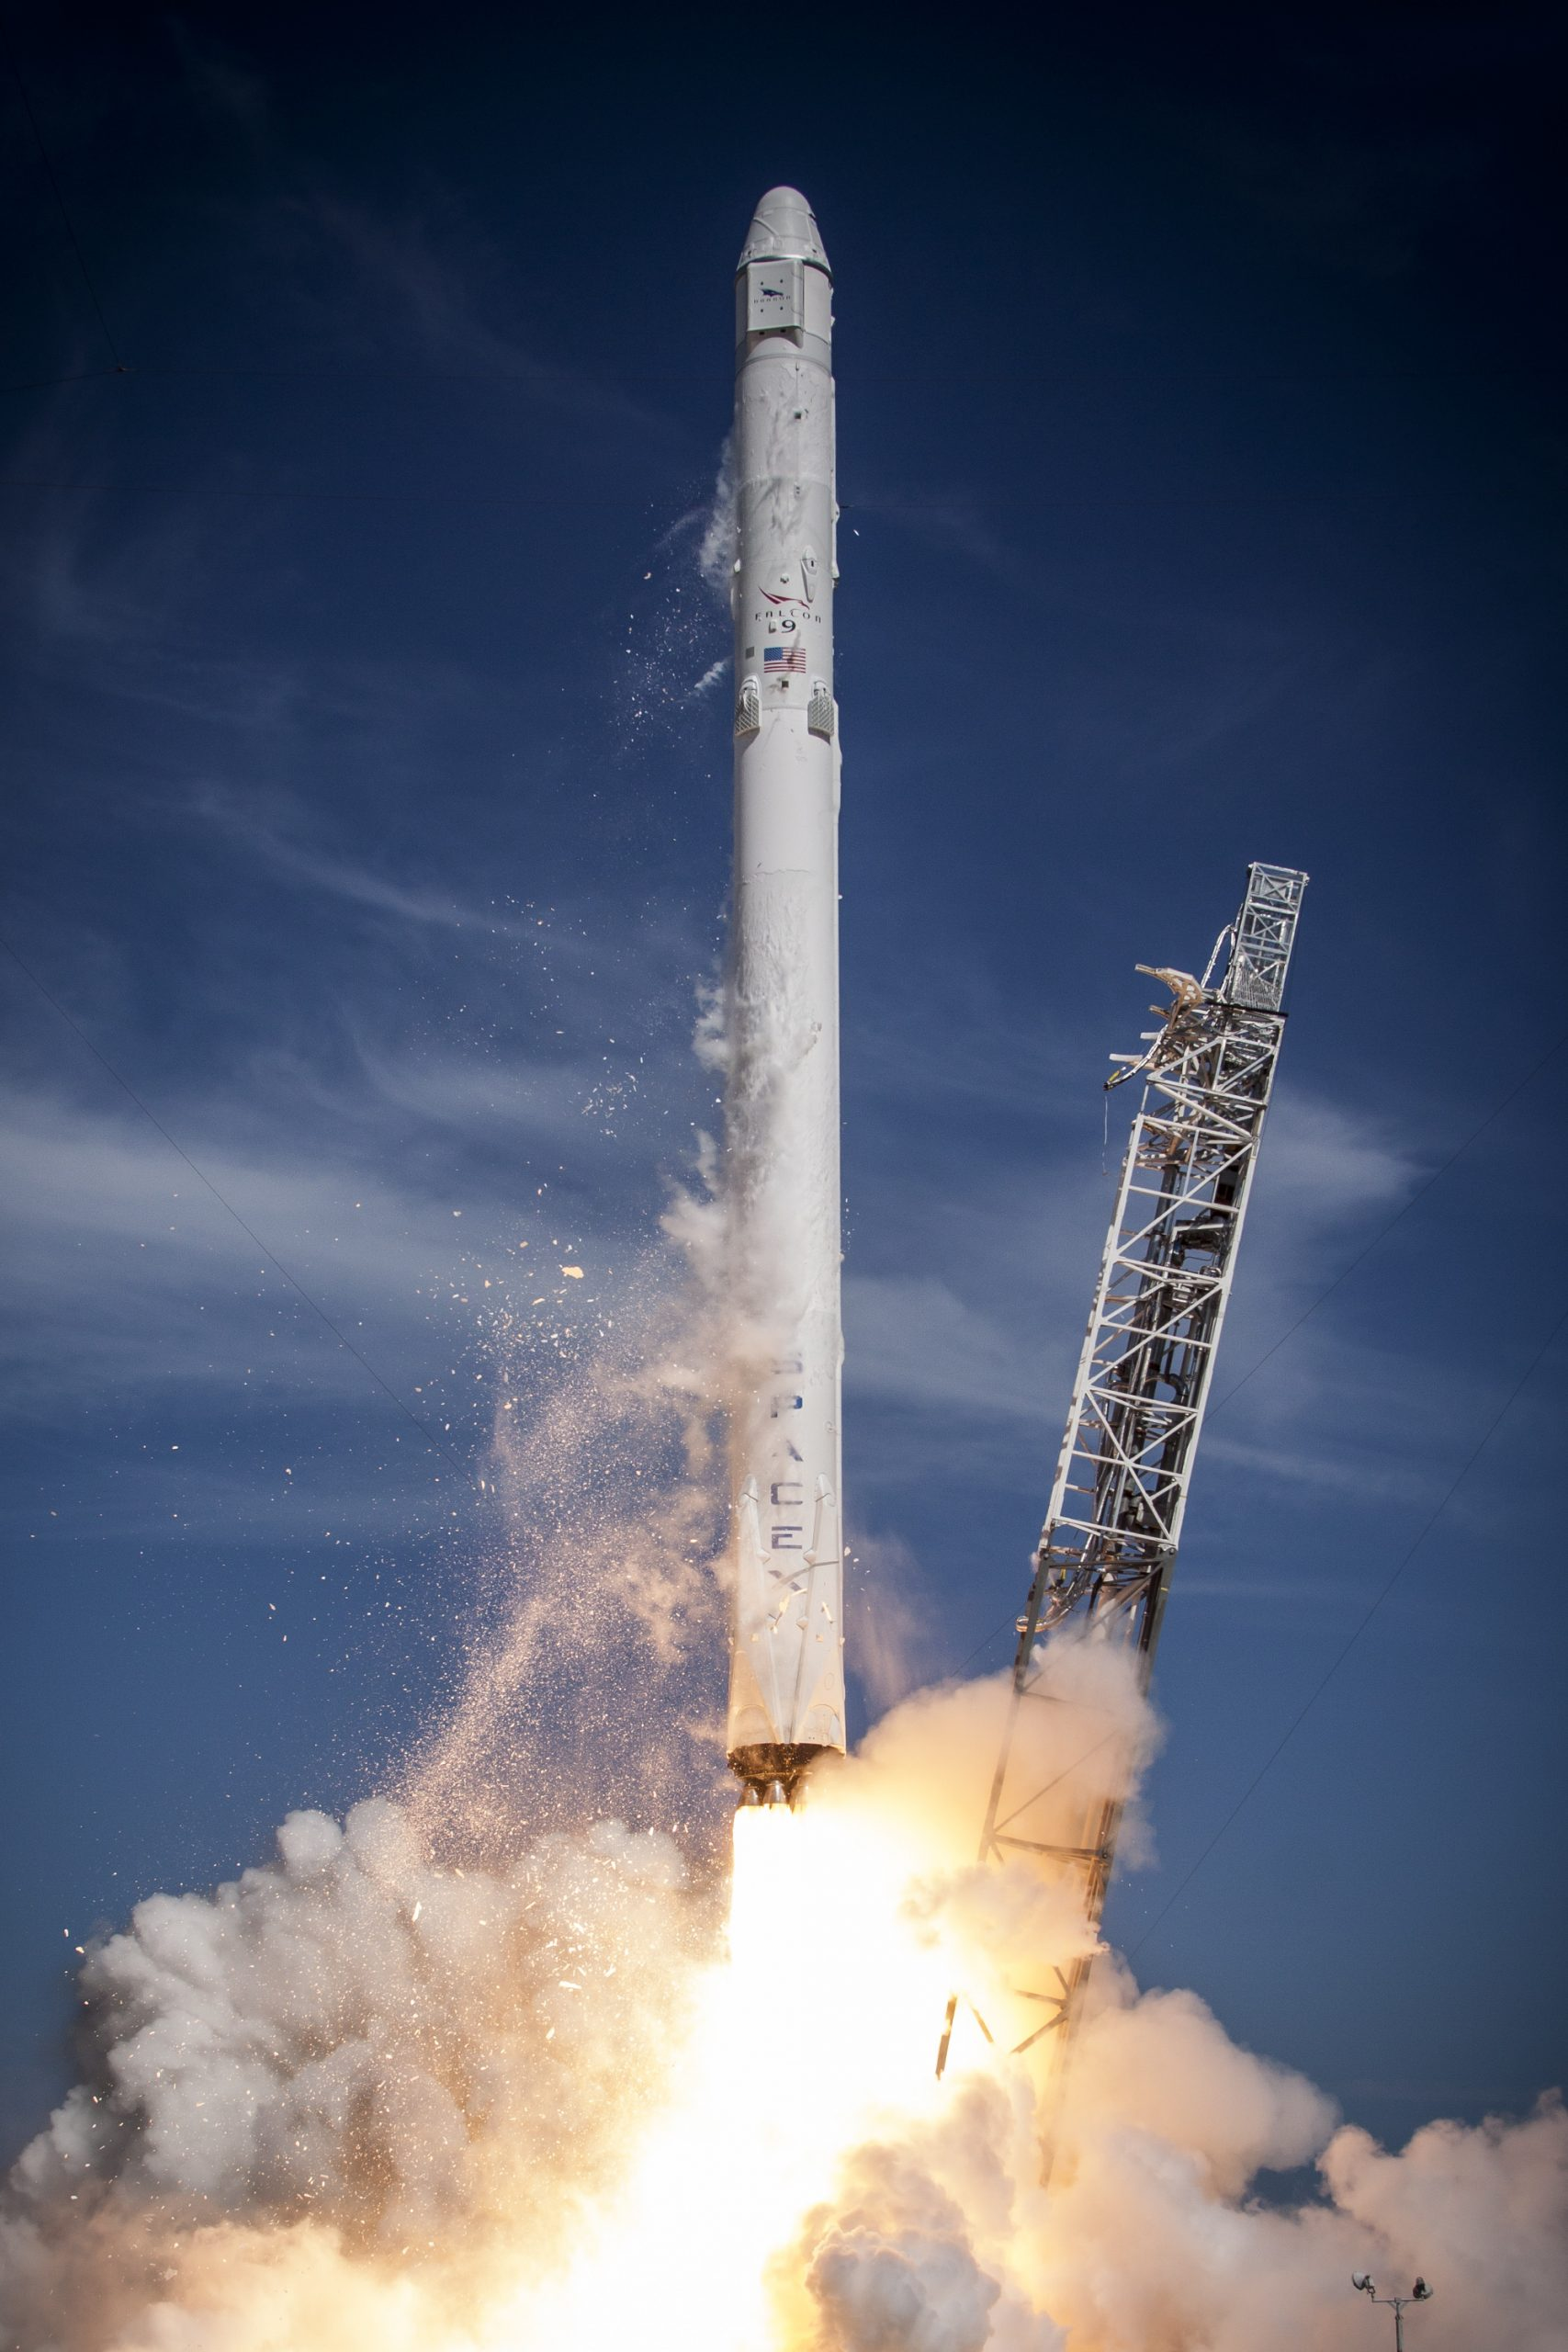 SPEE3D is turning its attention to 3D printing rocket engines. Image via SPEE3D.